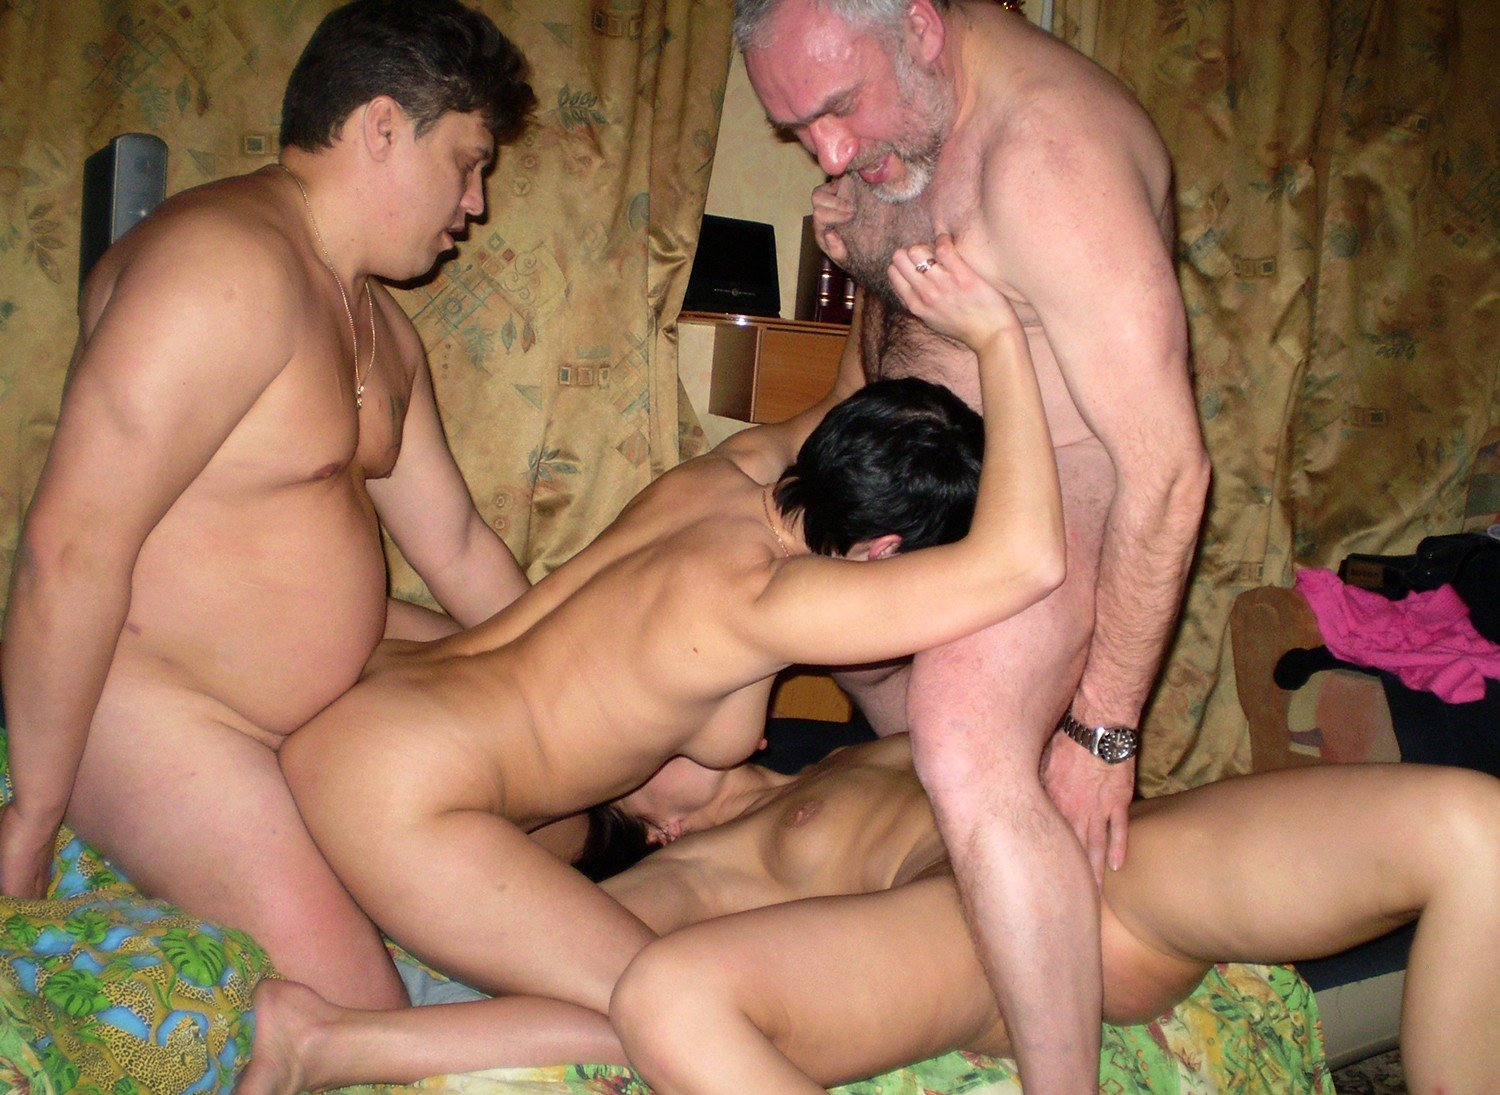 moore-pussy-old-young-swingers-porn-pics